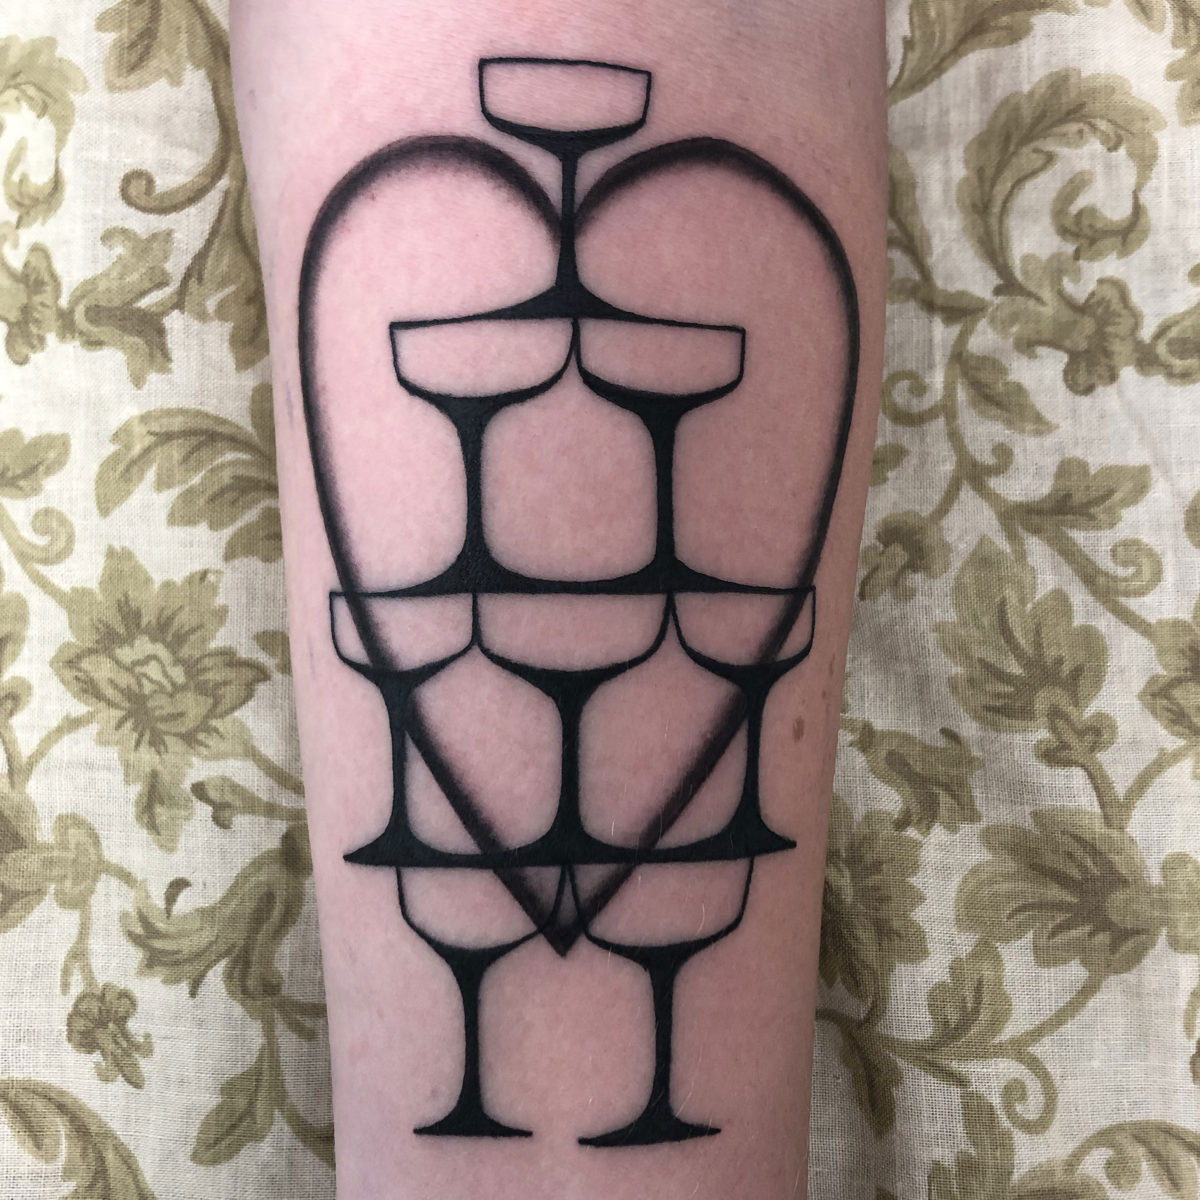 tattoo of a stack of wine glasses pouring into each other forming a heart